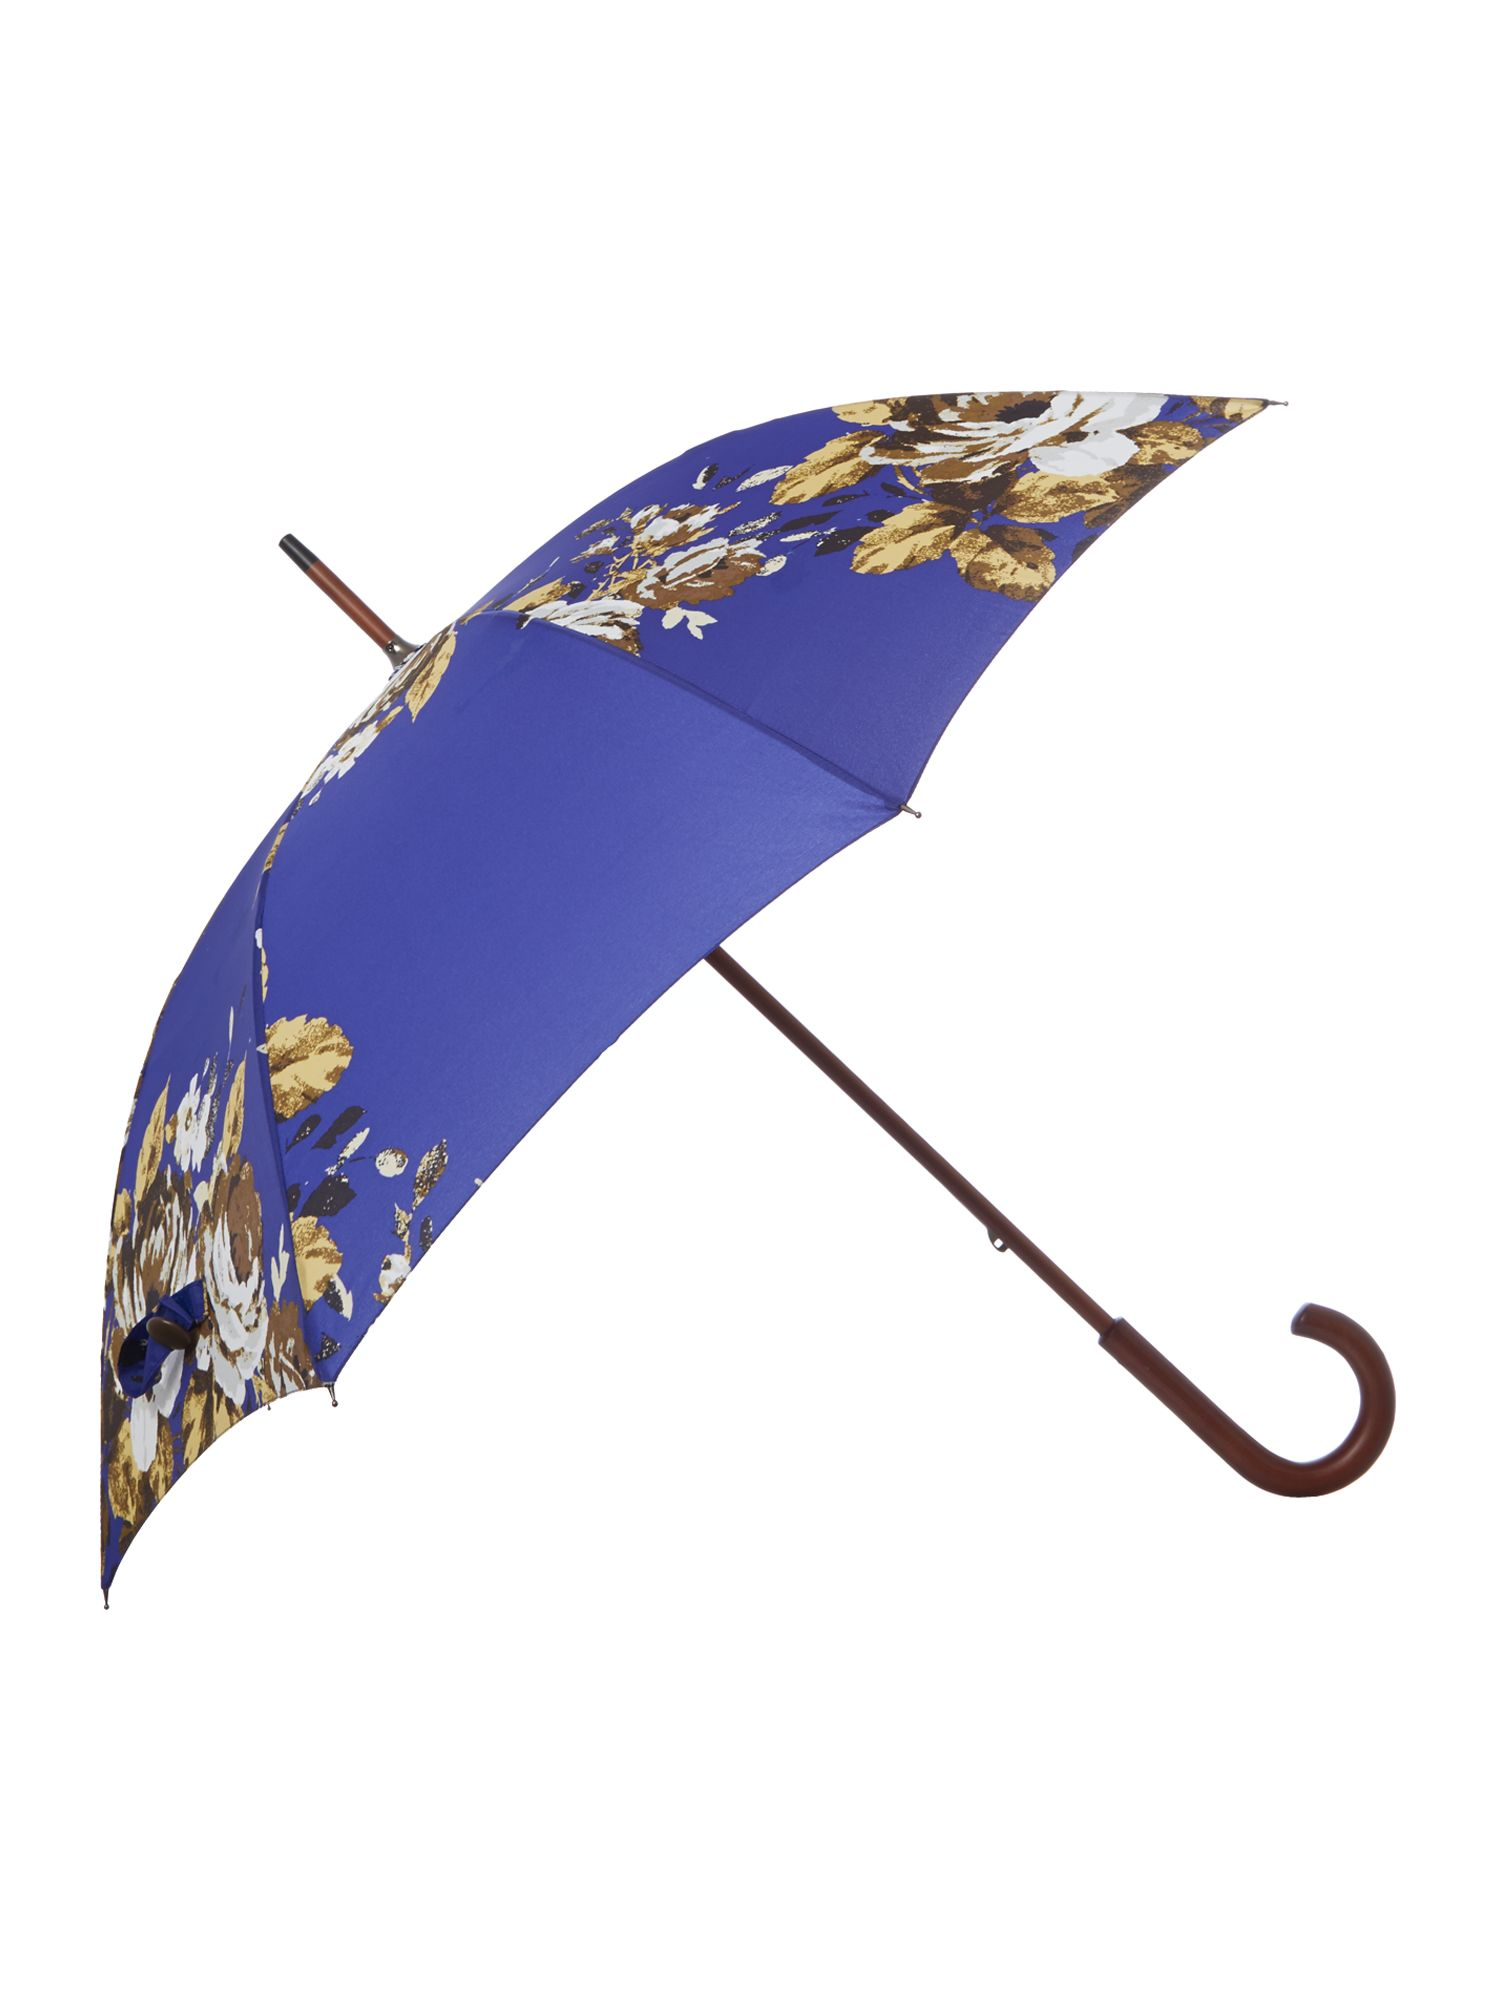 Kensington antique rose umbrella